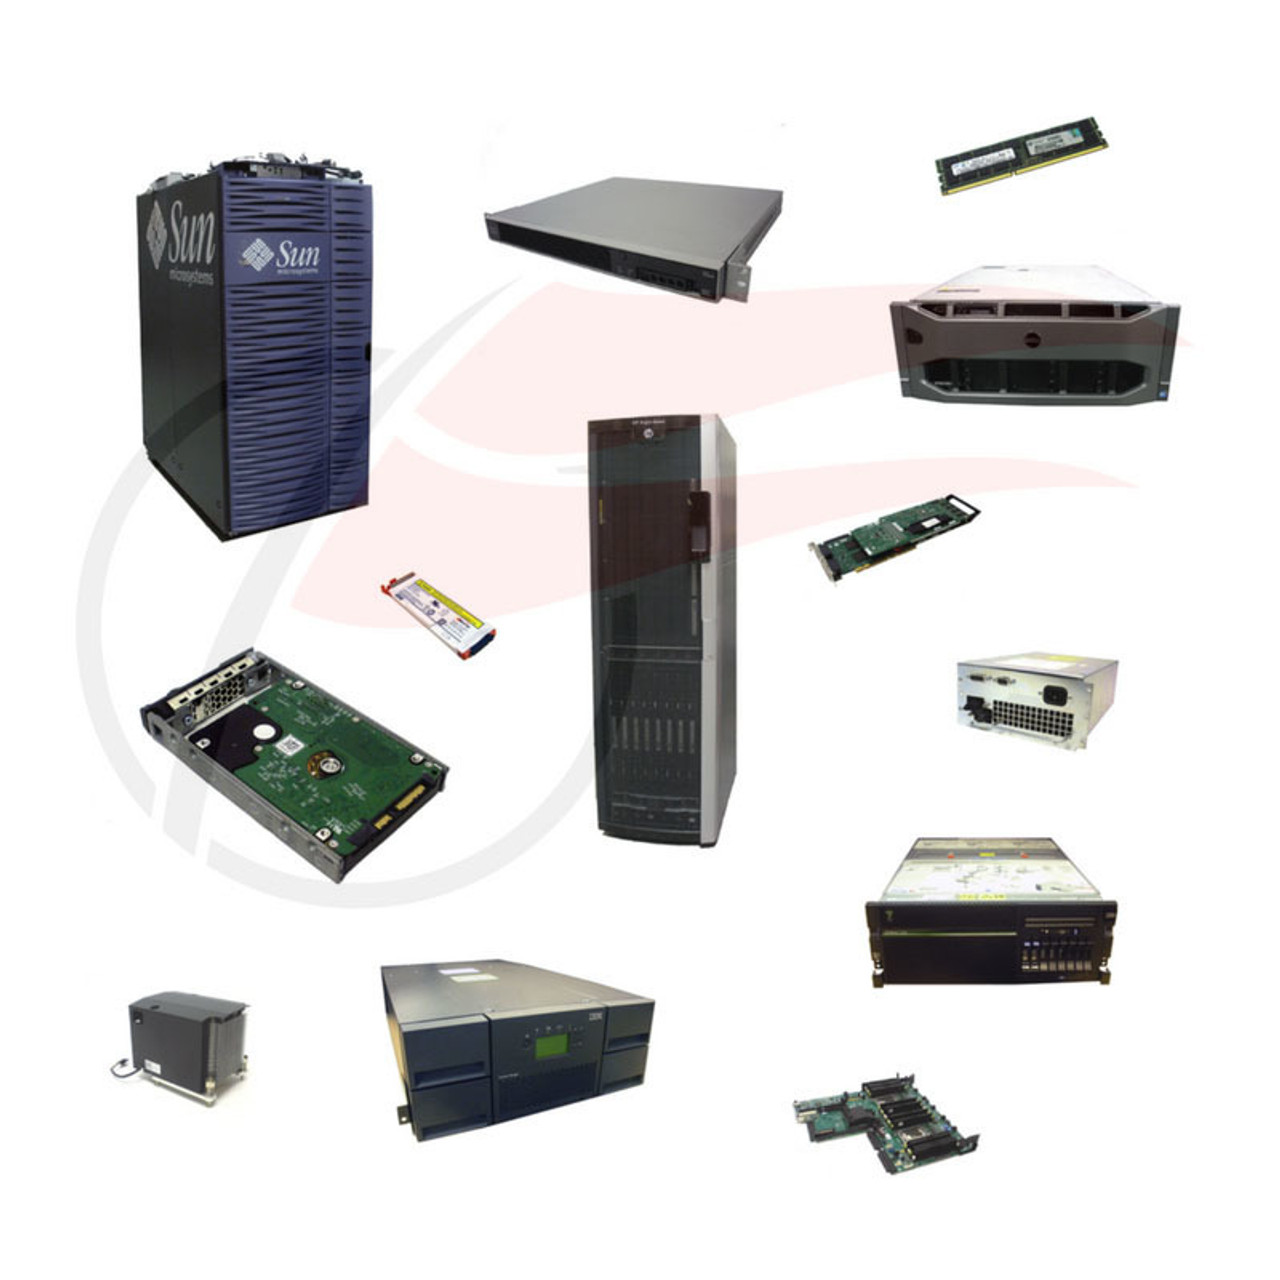 HP Integrity rx2800 Spare Parts